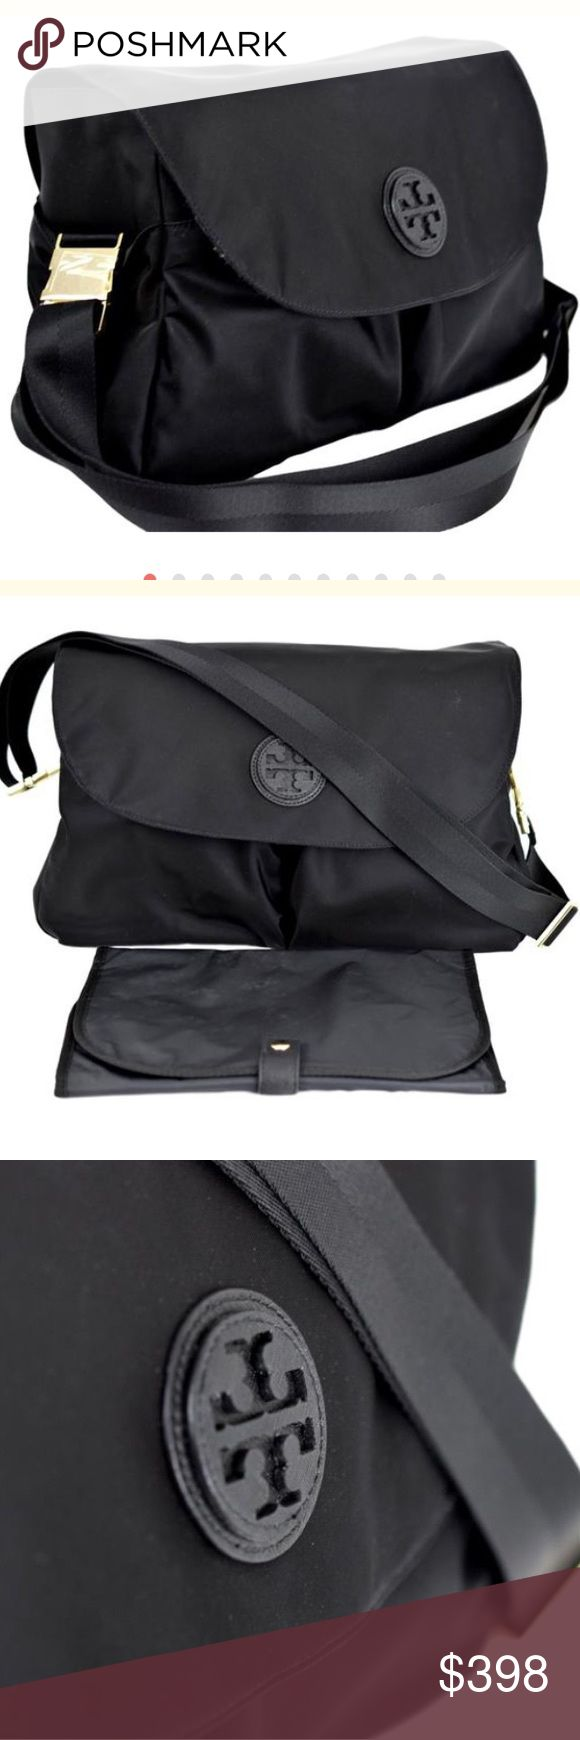 NWT Tory Burch Nylon Messenger Diaper bag New with tags!  Tory Burch Nylon Messenger Diaper bag    Brand new beautiful Tory Burch black nylon messenger baby bag.     The body of this bag is an easy to clean black nylon material while the finishings are a classy gold!     Leather tory logo in the front.   Two exterior pockets along with two exterior bottle pockets.   Multiple interior pockets including an additional two bottle pockets.  Diaper changing pad included.    Will ship right away…